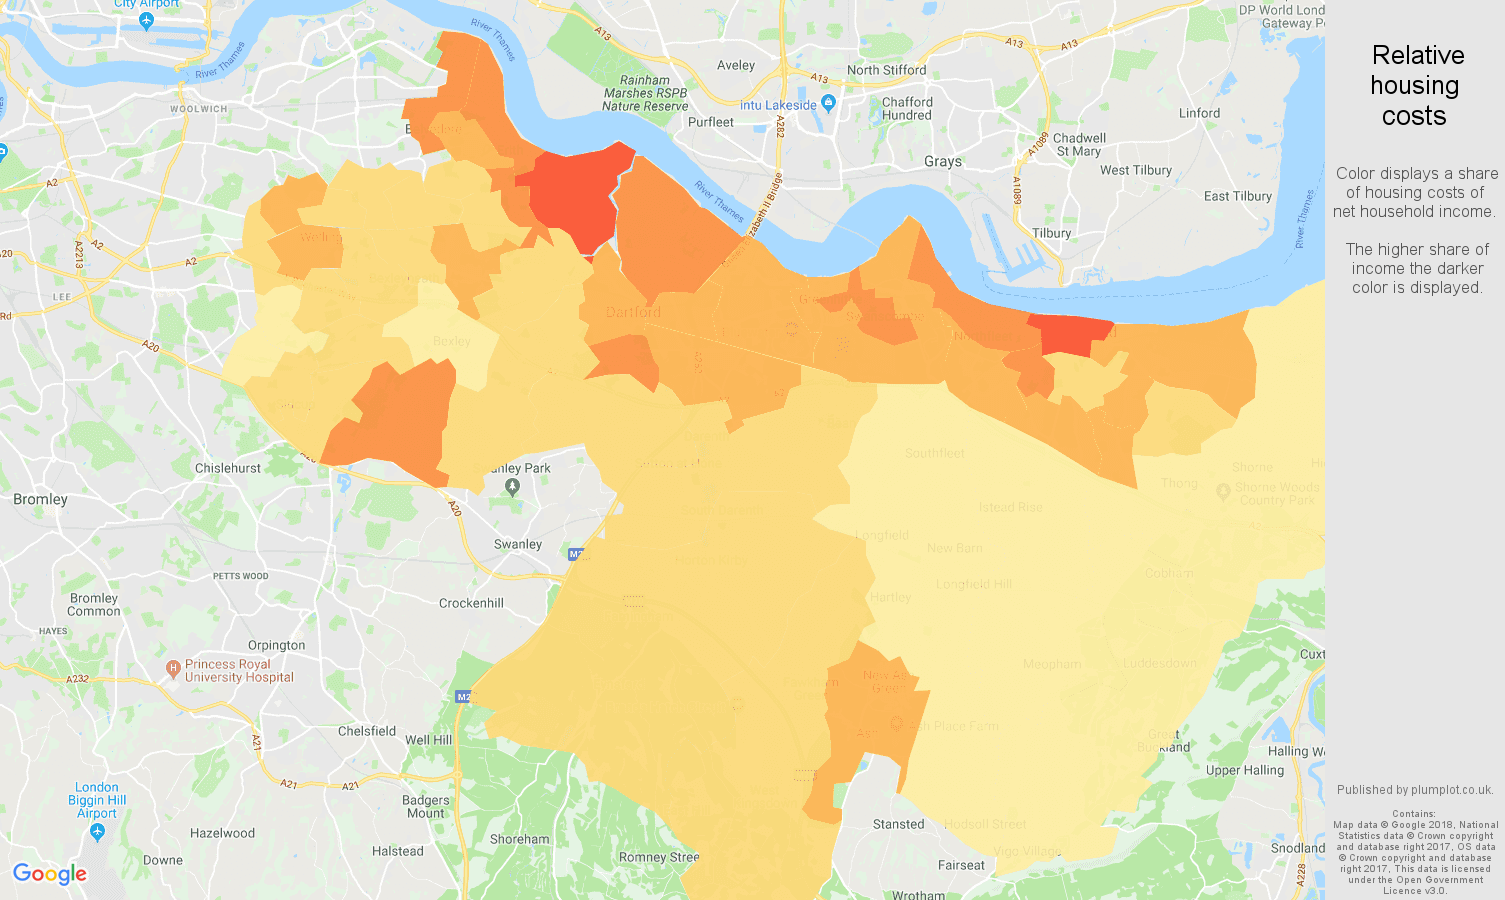 Dartford relative housing costs map